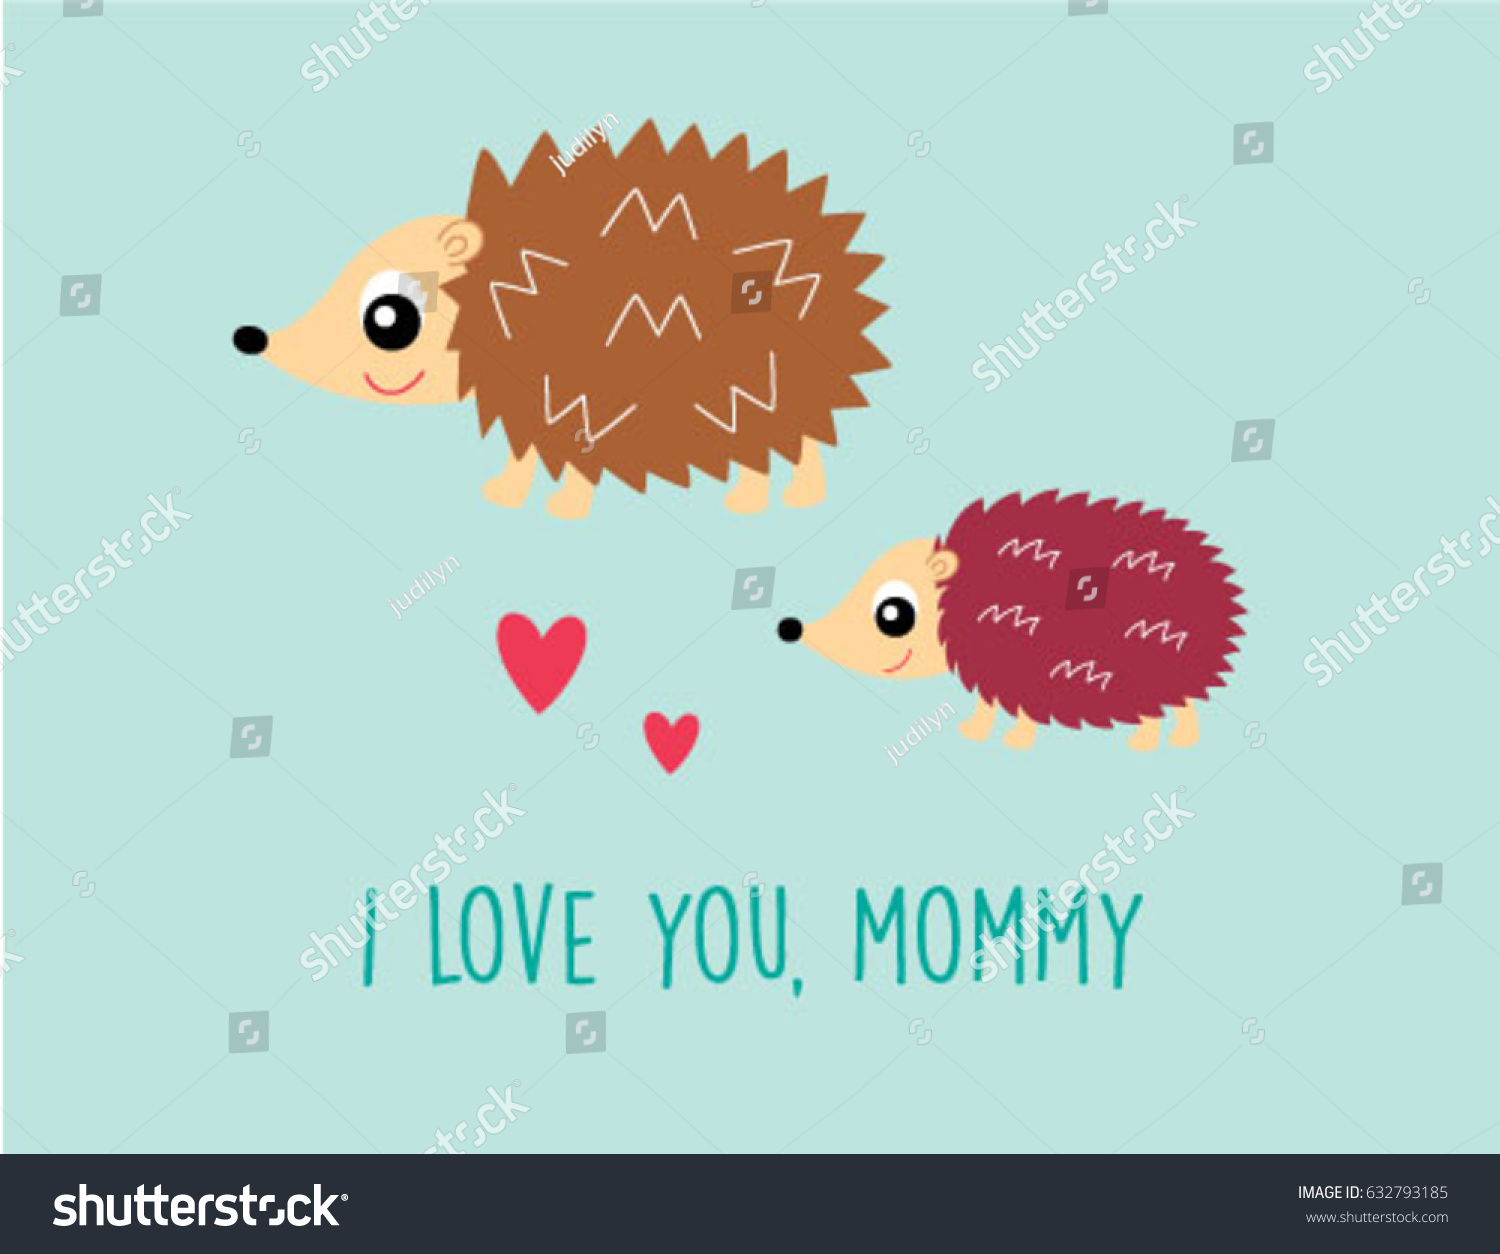 hight resolution of cute hedgehog mother day greeting card cute porcupine mother day greeting card cute porcupine mother day greeting card clipart cute porcupine mother day